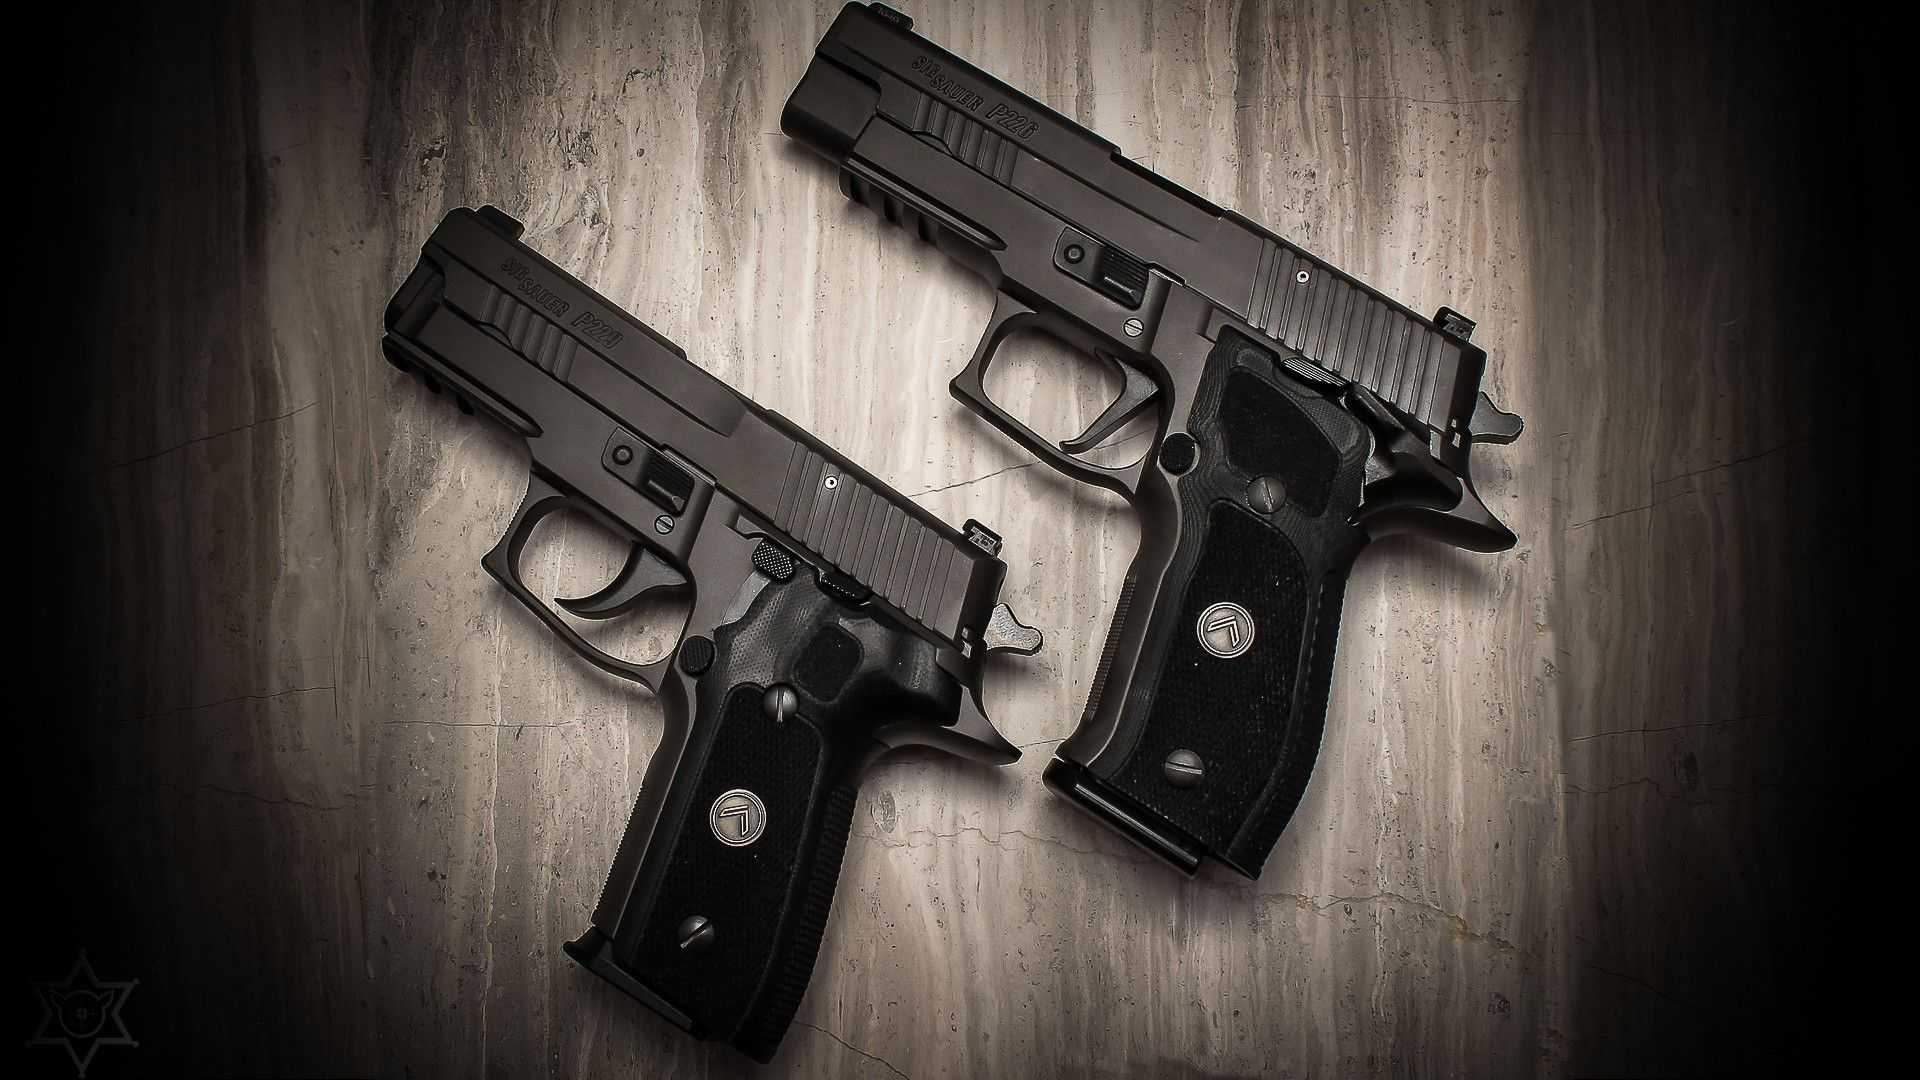 Wallpaper Pistols Sig Sauer P226 Army: Pin By Buu Dang On IPhone 6S Plus Wallpapers Must To Have